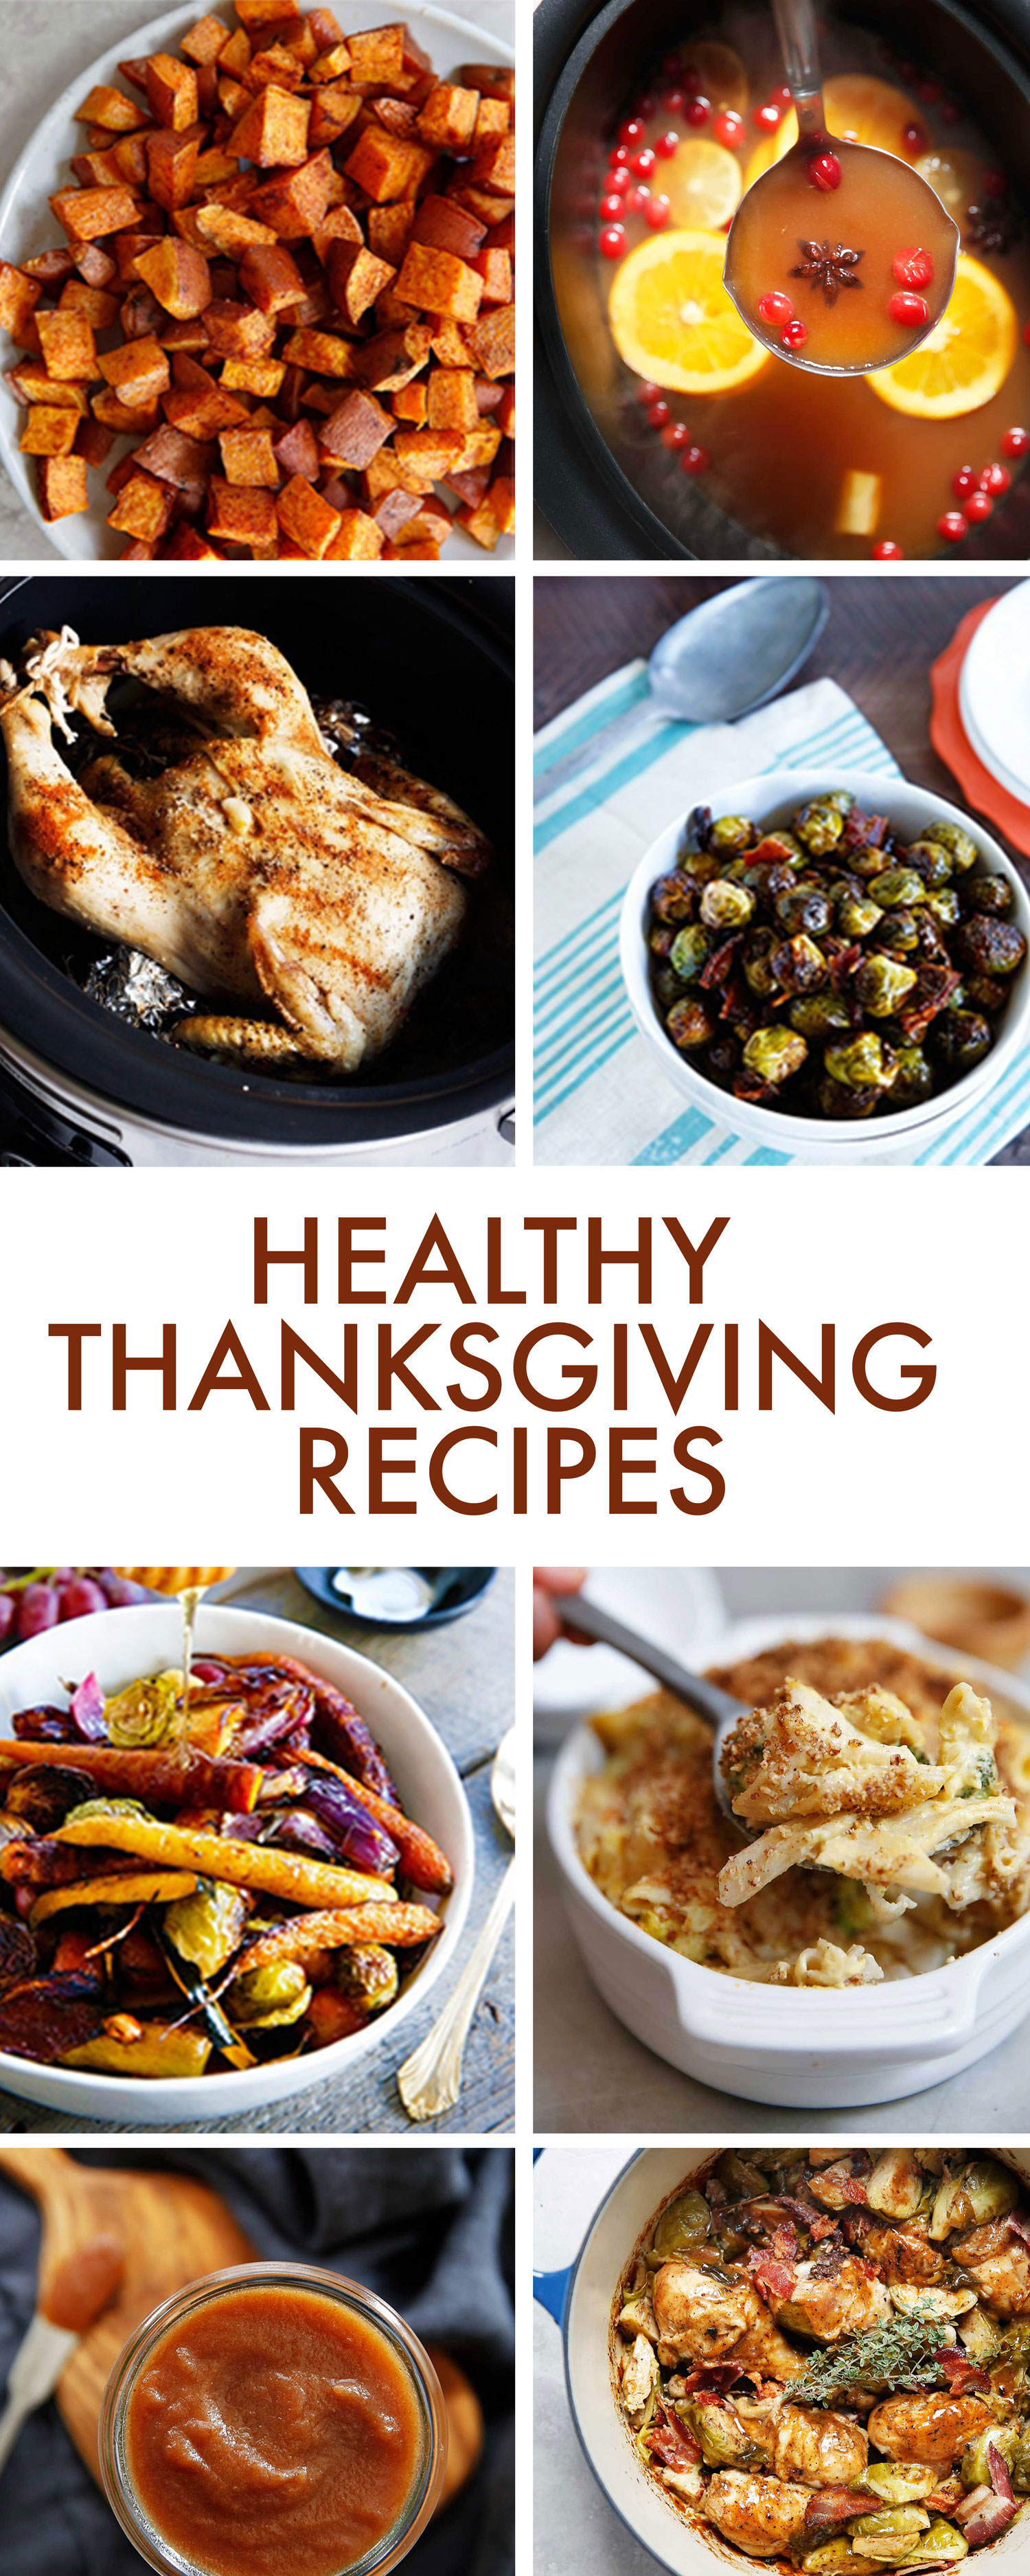 Healthy Thanksgiving Recipes (gluten-free, paleo-friendly) - Lexi's Clean Kitchen